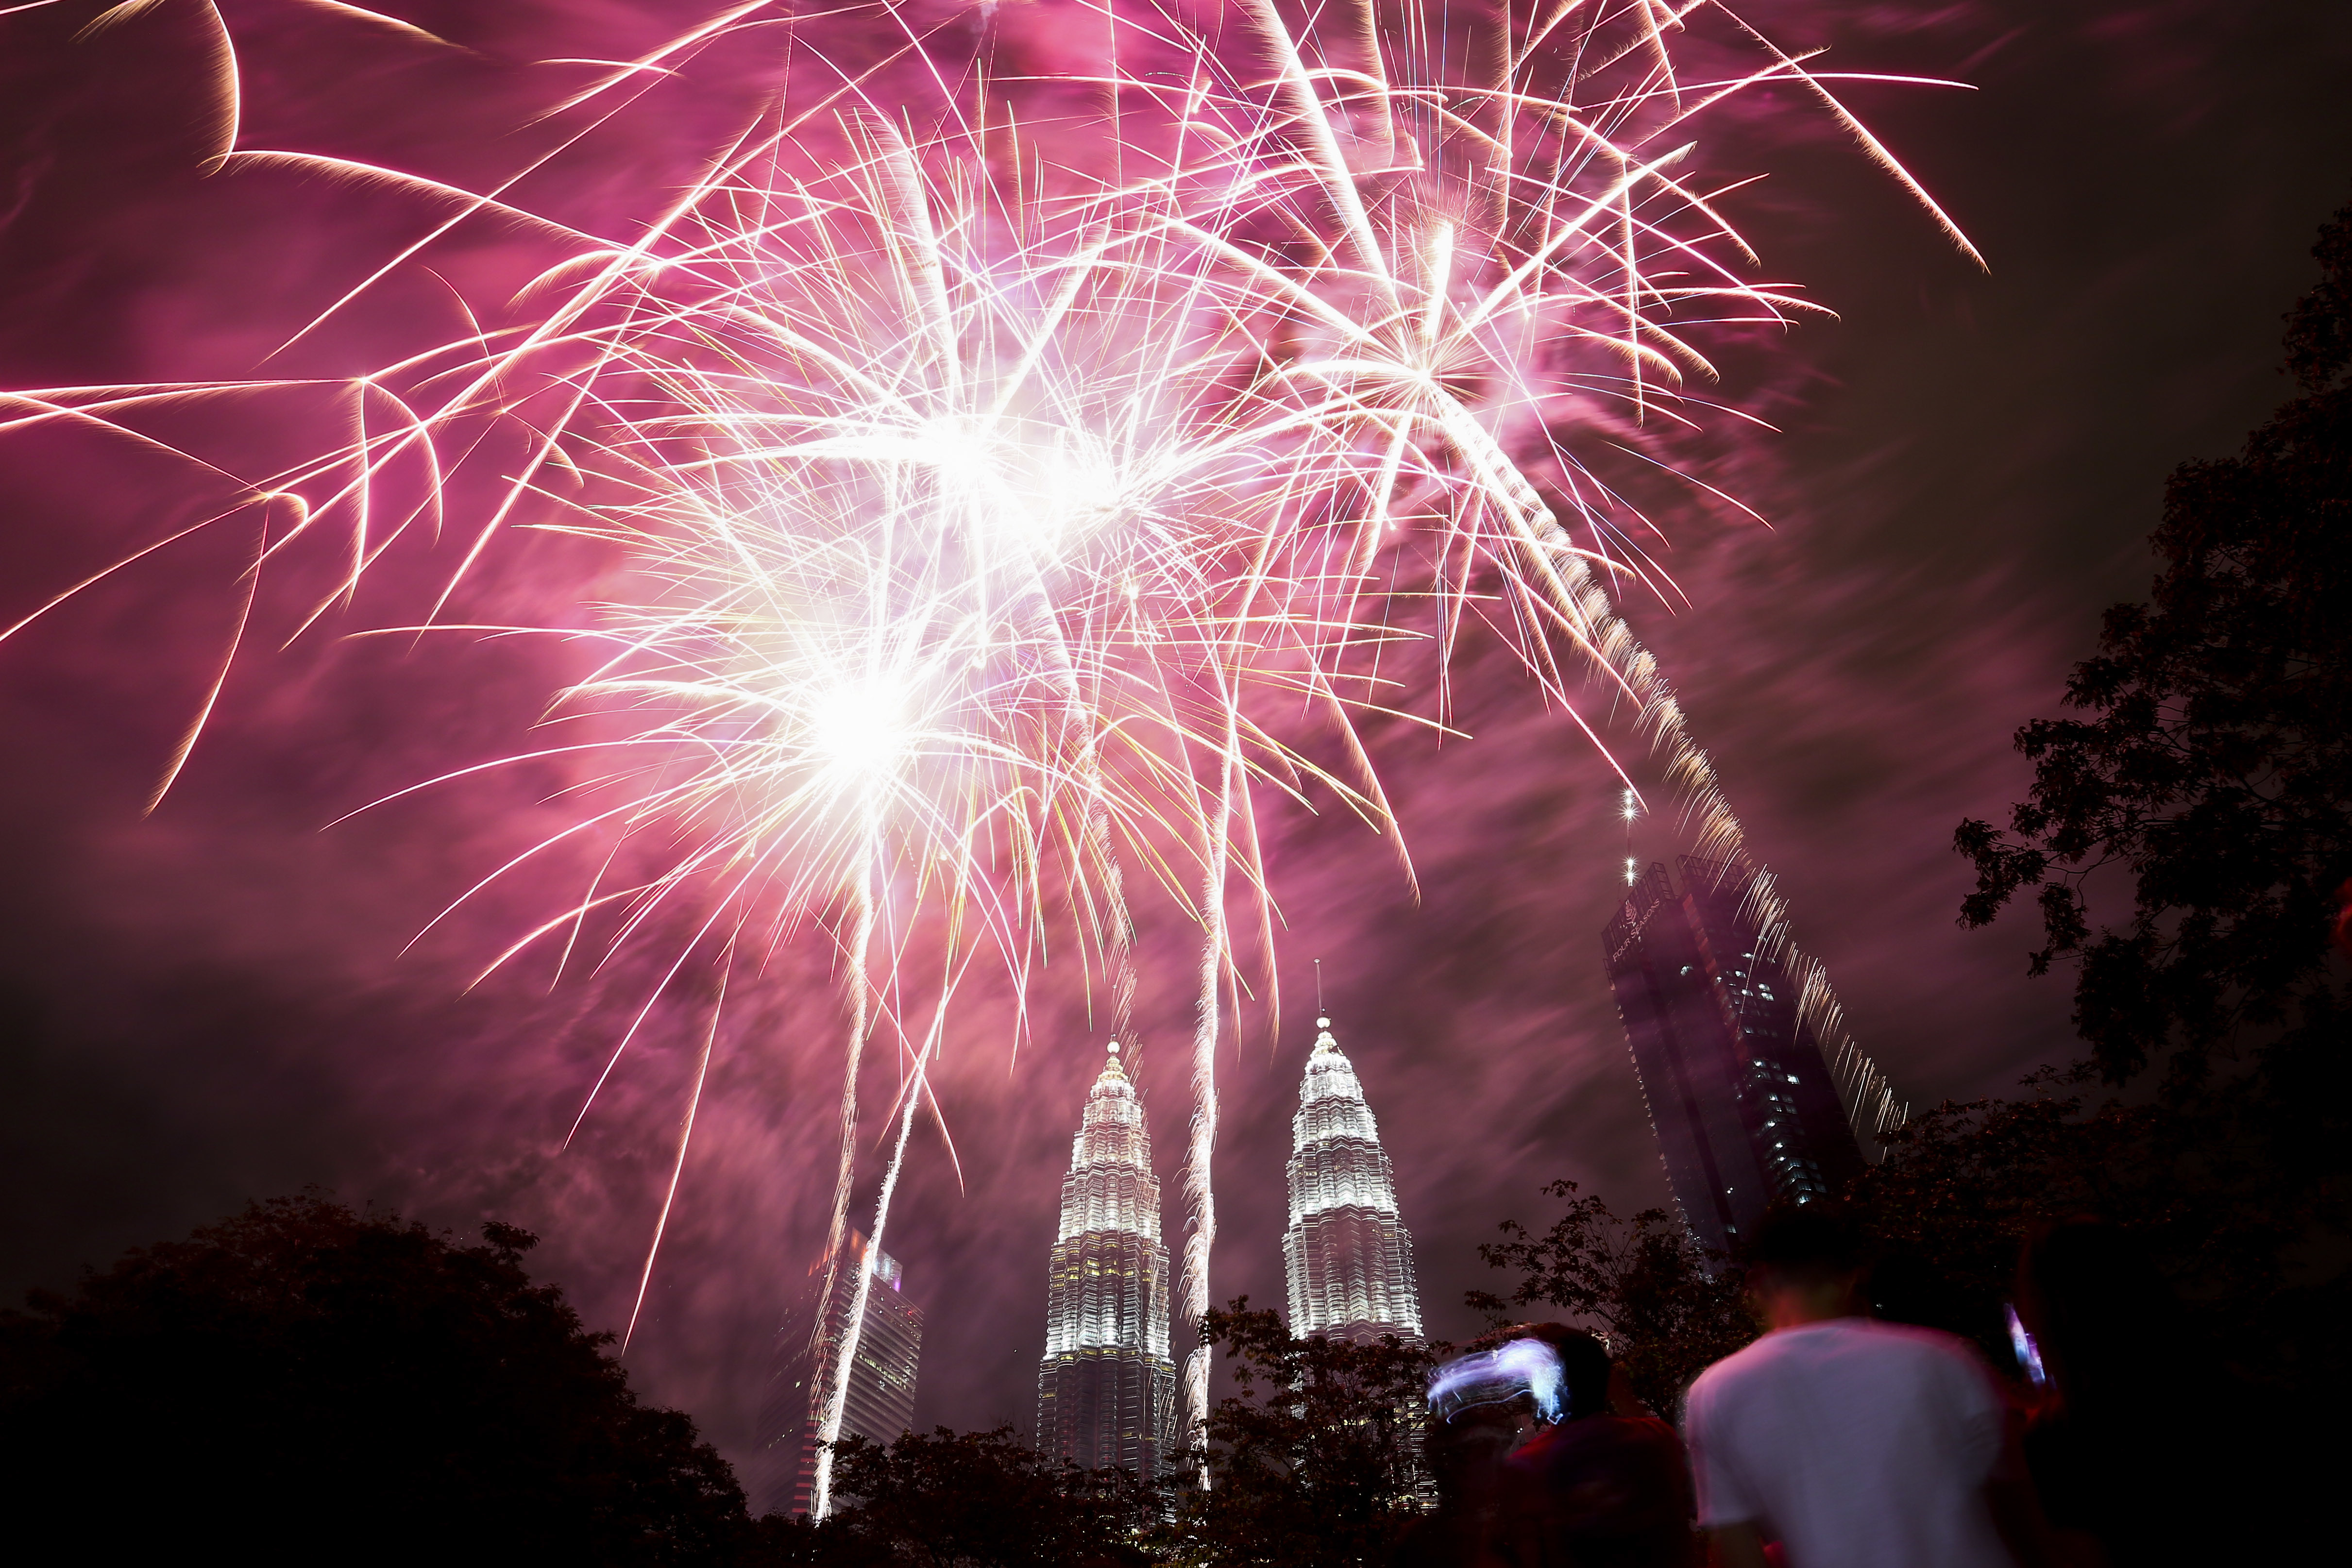 <div class='meta'><div class='origin-logo' data-origin='AP'></div><span class='caption-text' data-credit='AP Photo/Sadiq Asyraf'>People watch a fireworks display in front of Malaysia's landmark building, the Petronas Twin Towers, during the New Year's celebration in Kuala Lumpur, Malaysia.</span></div>